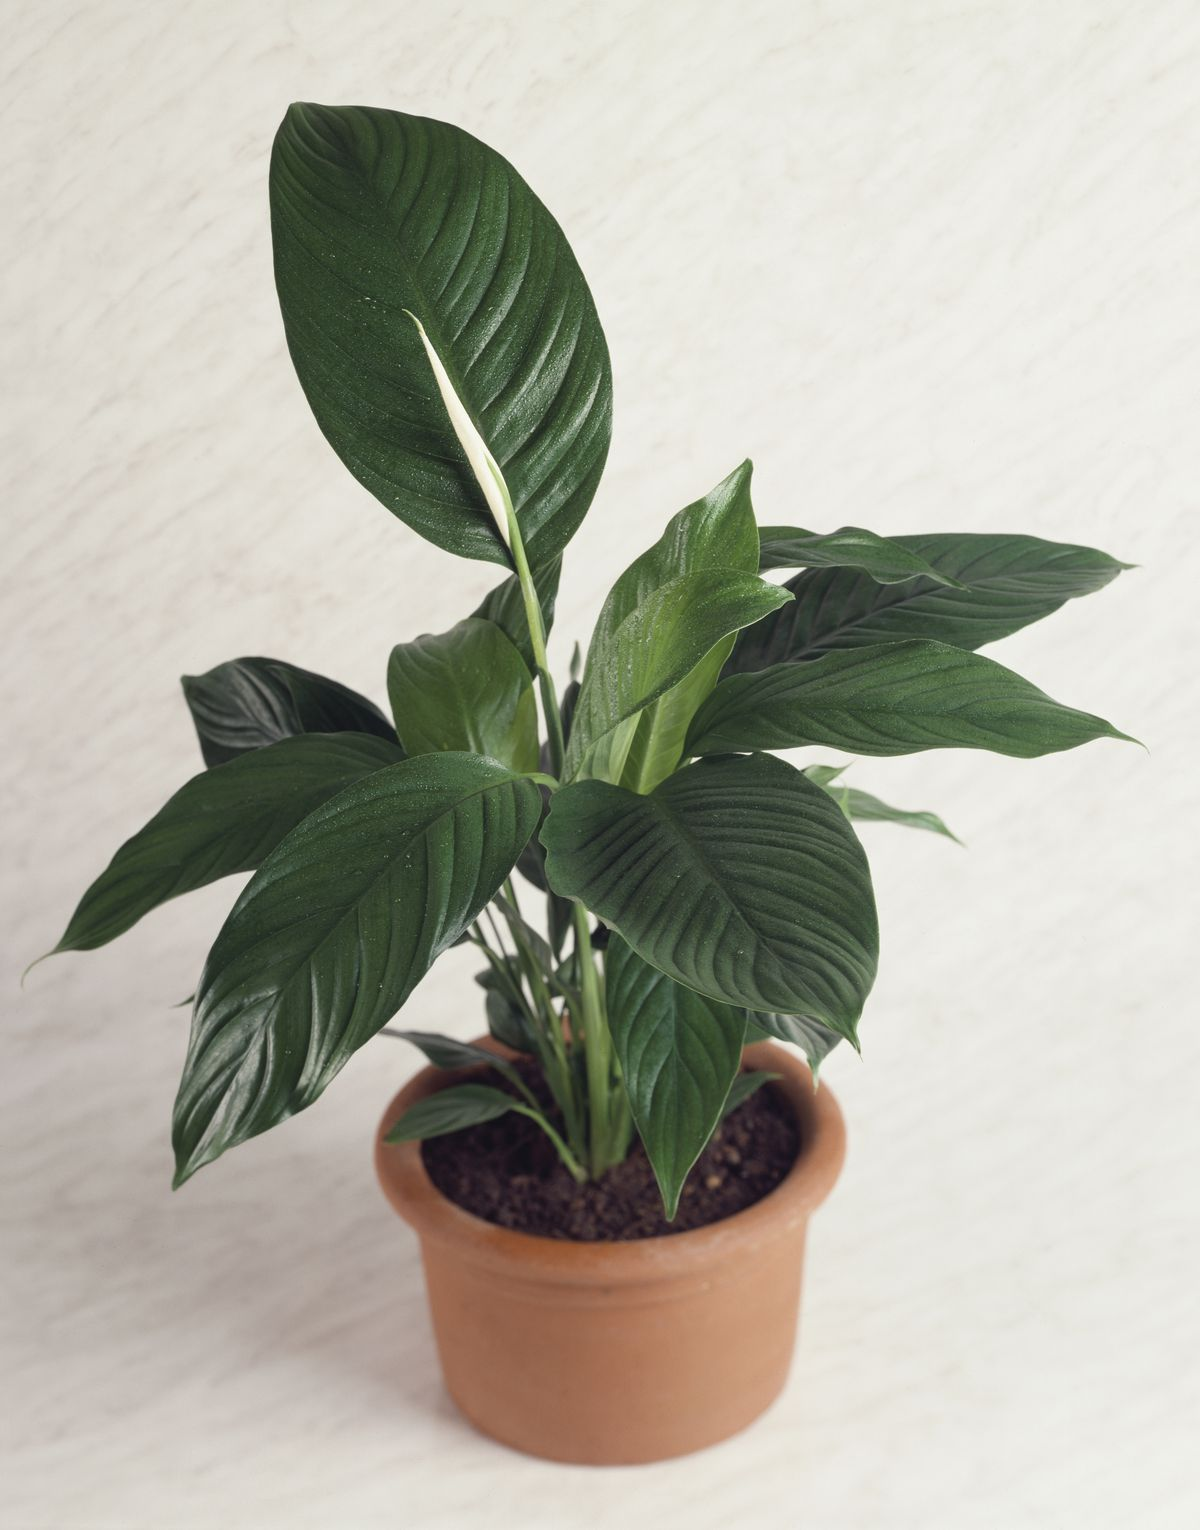 A potted rubber fig or Rubber plant, or Moraceae, plant.